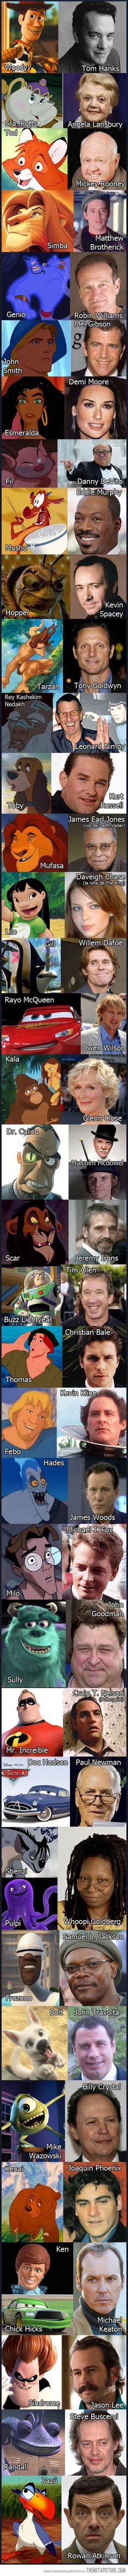 Disney characters and their real faces… i had no idea